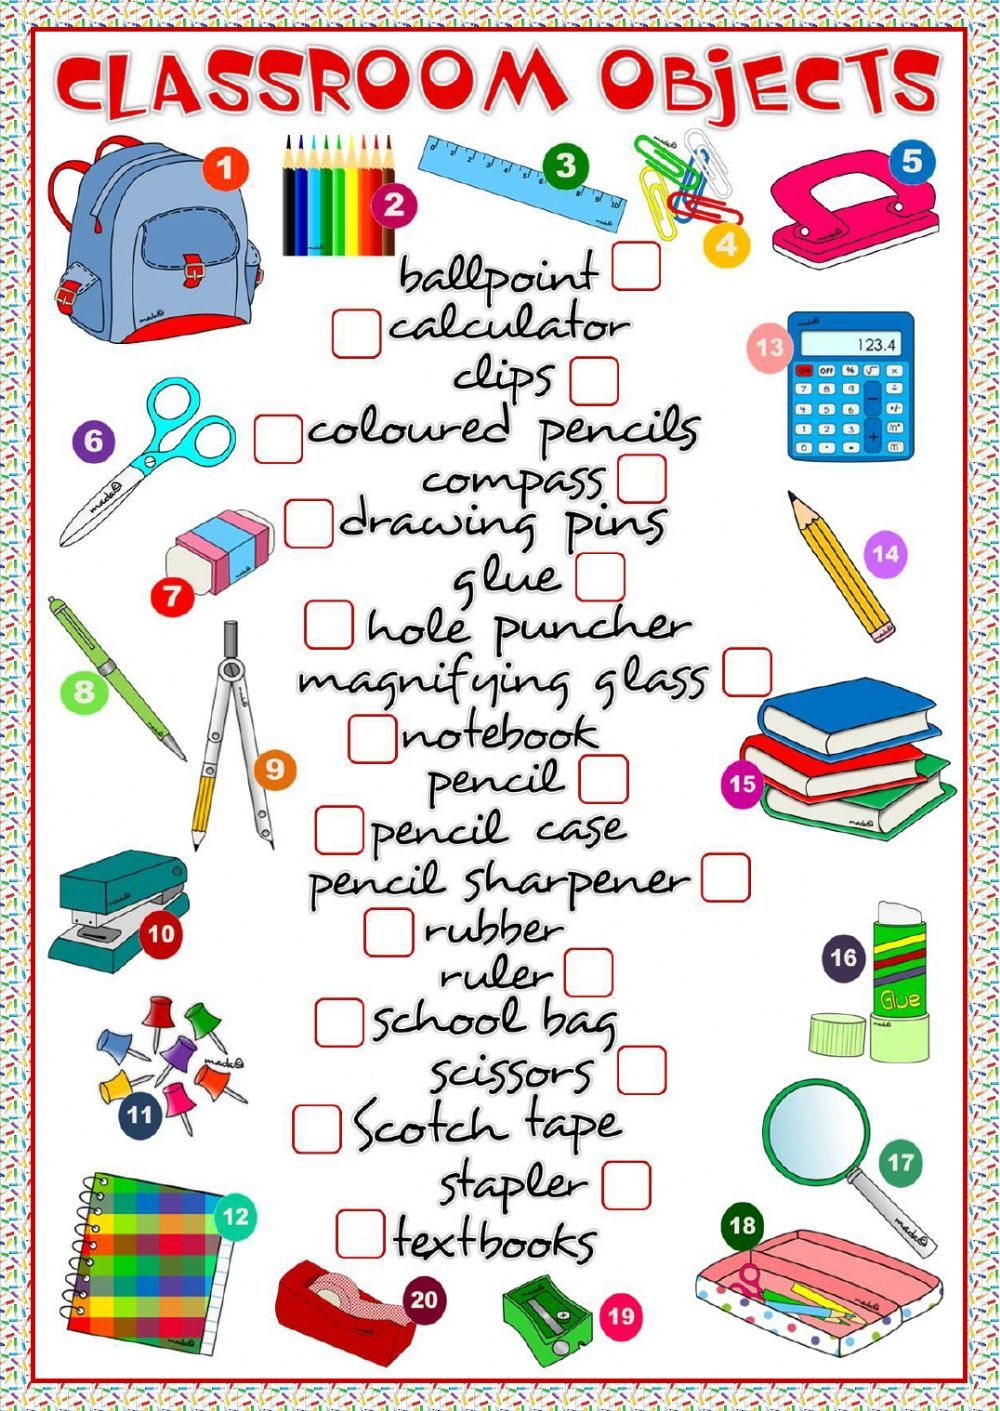 worksheet Classroom Worksheets classroom objects interactive and downloadable worksheet check 50 free esl efl worksheets made by teachers for teachers